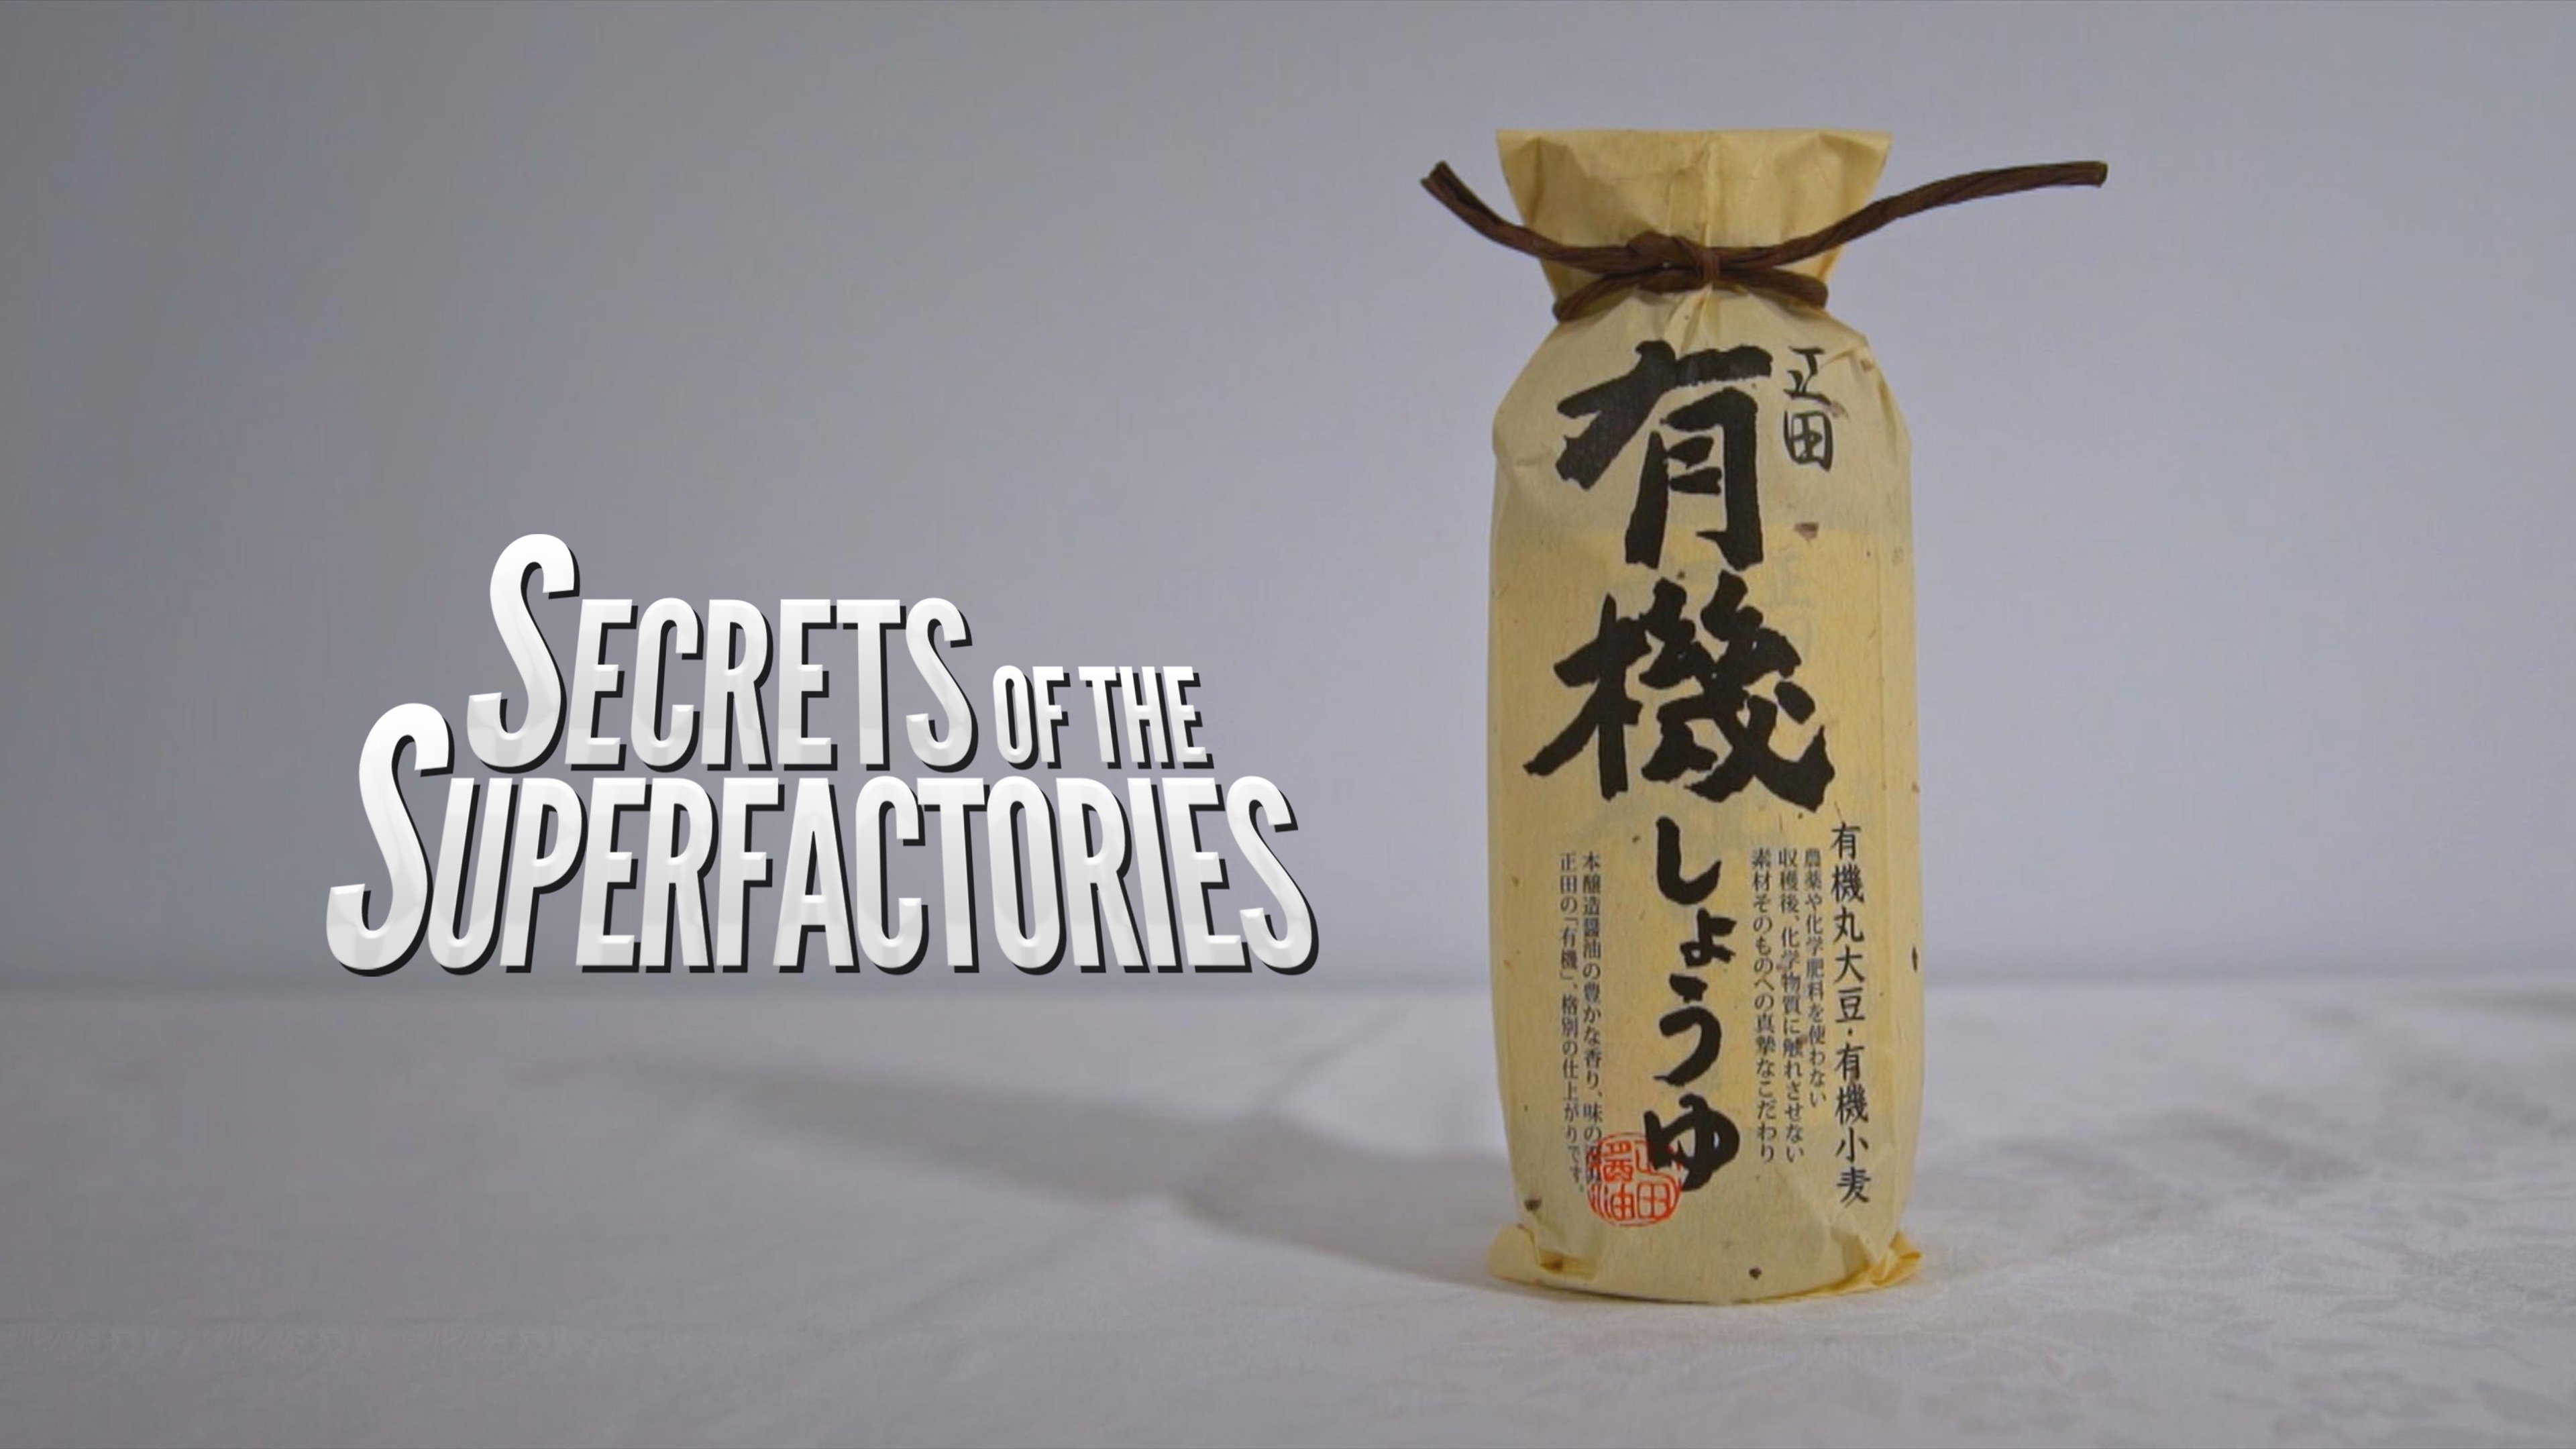 Secrets of the Superfactories